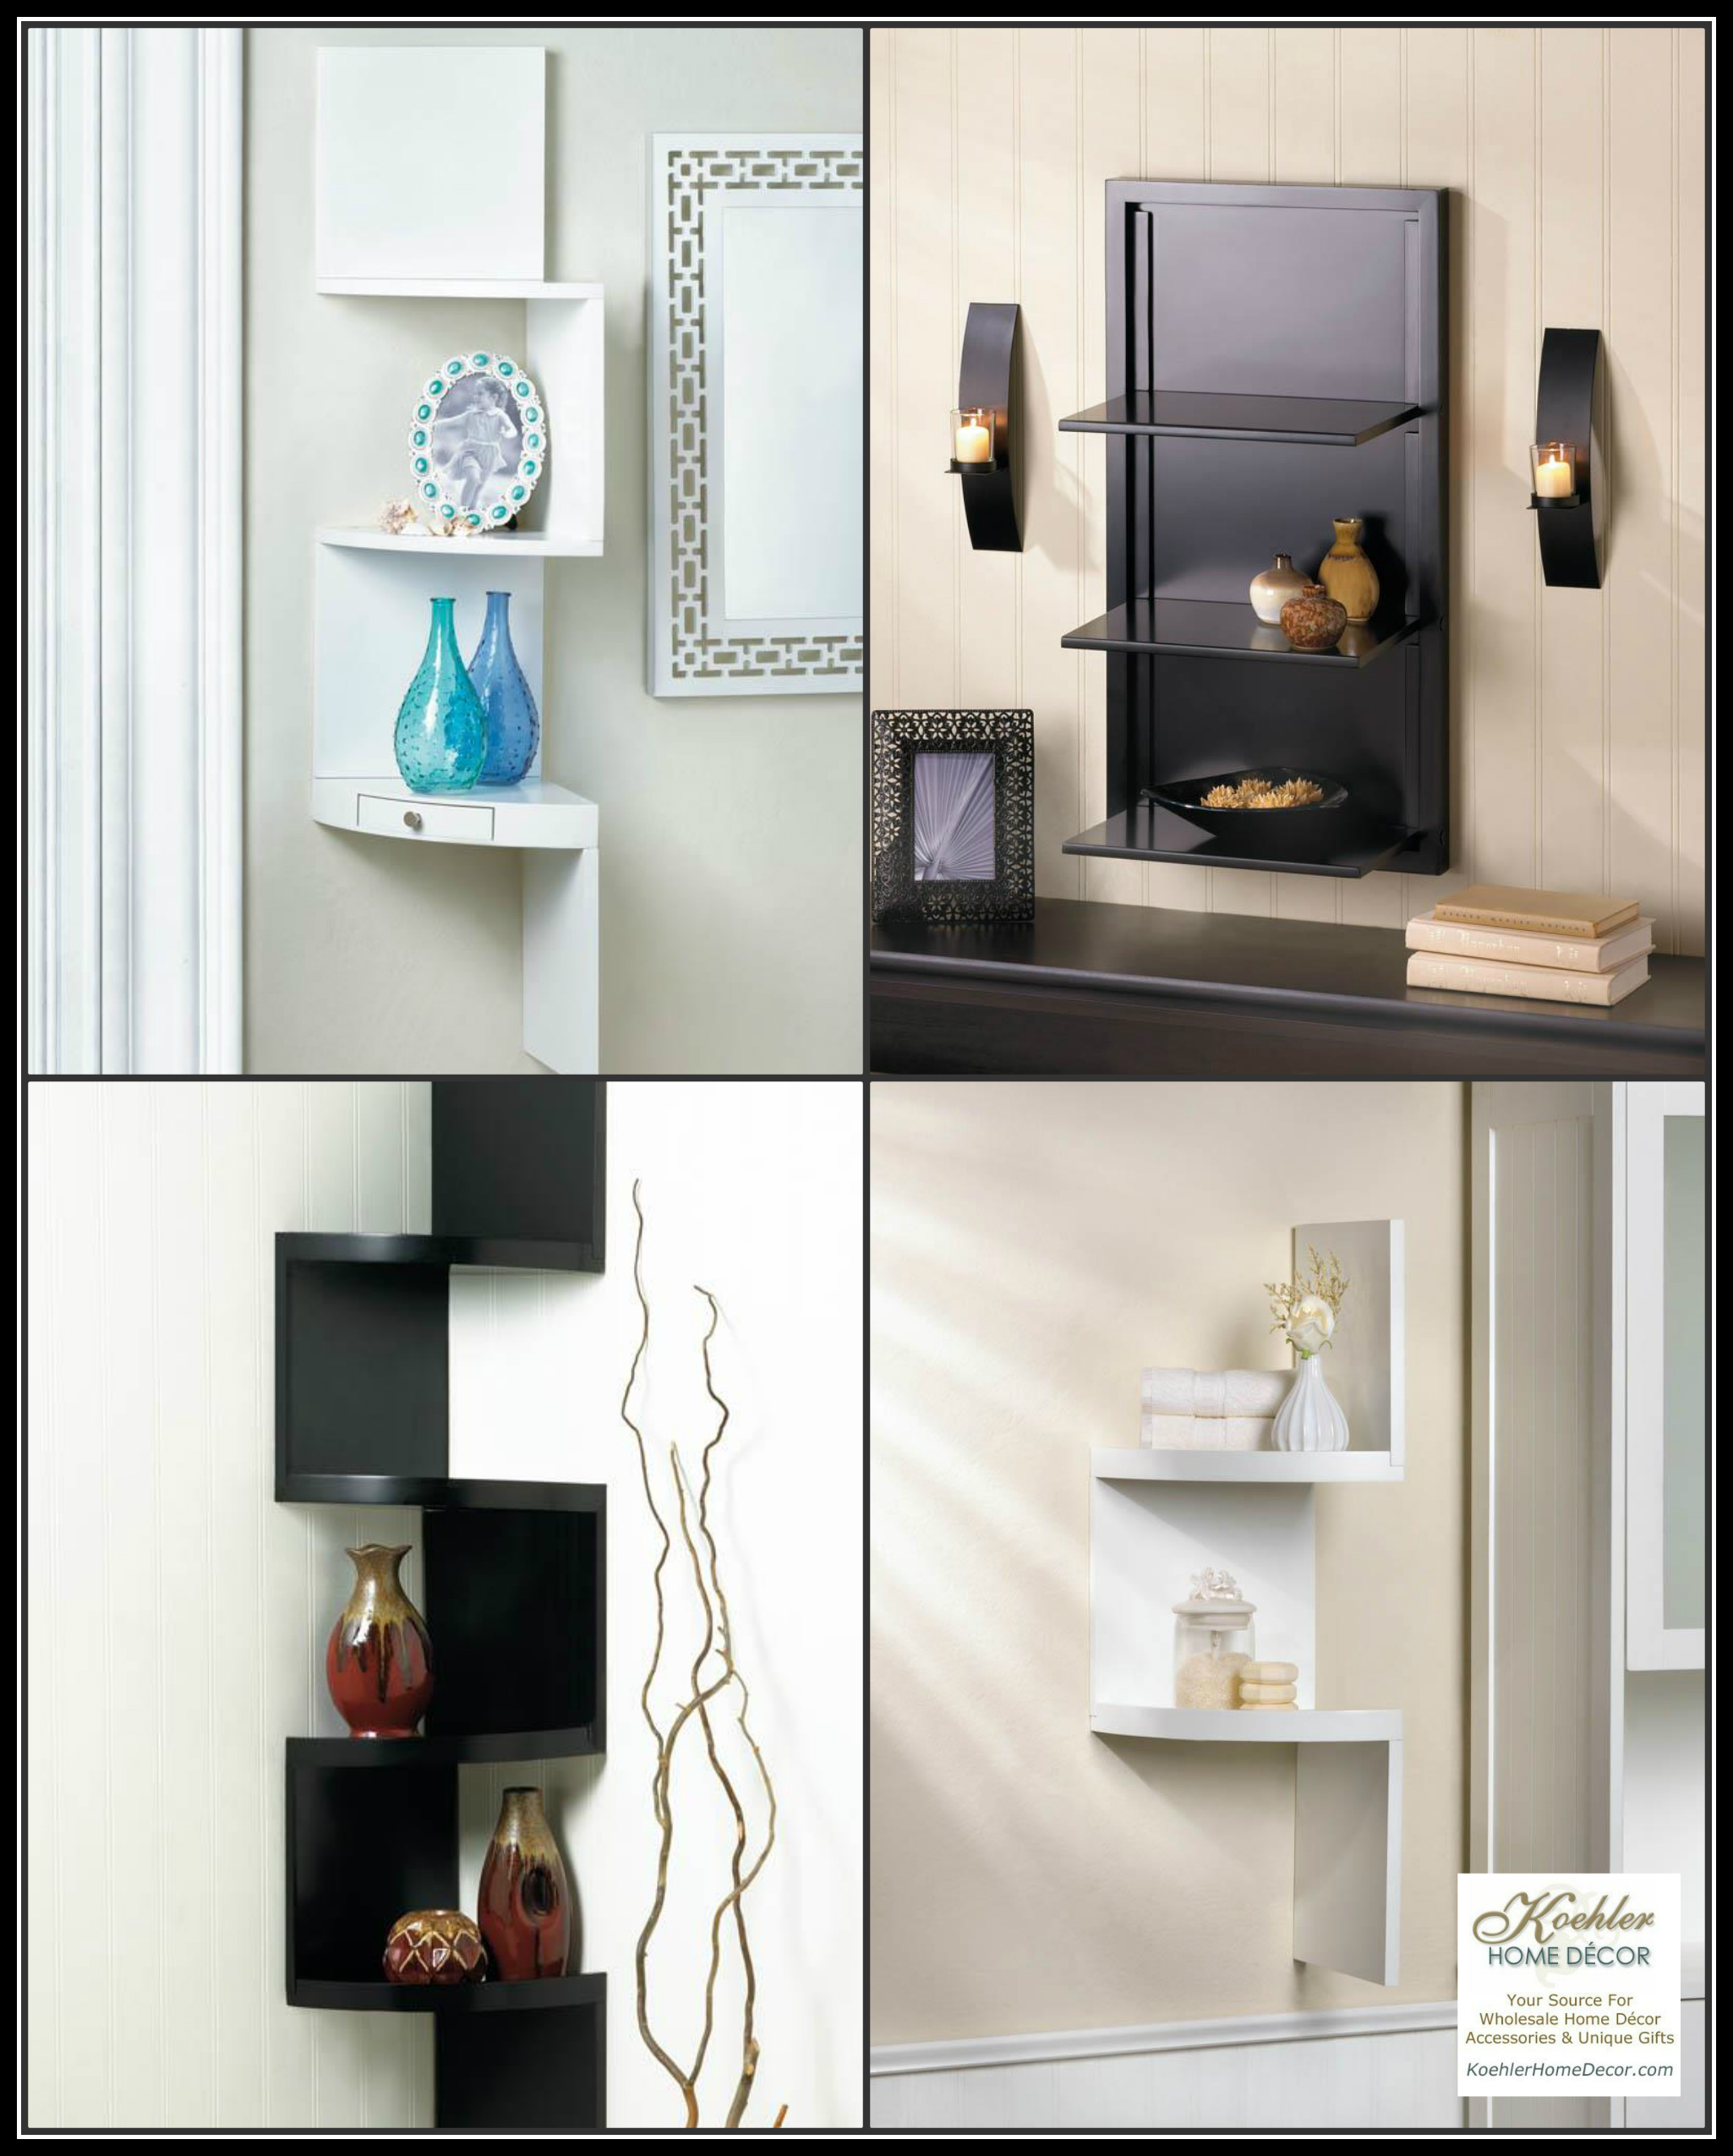 New at khd stylish shelving solutions koehler home for Koehler home decor